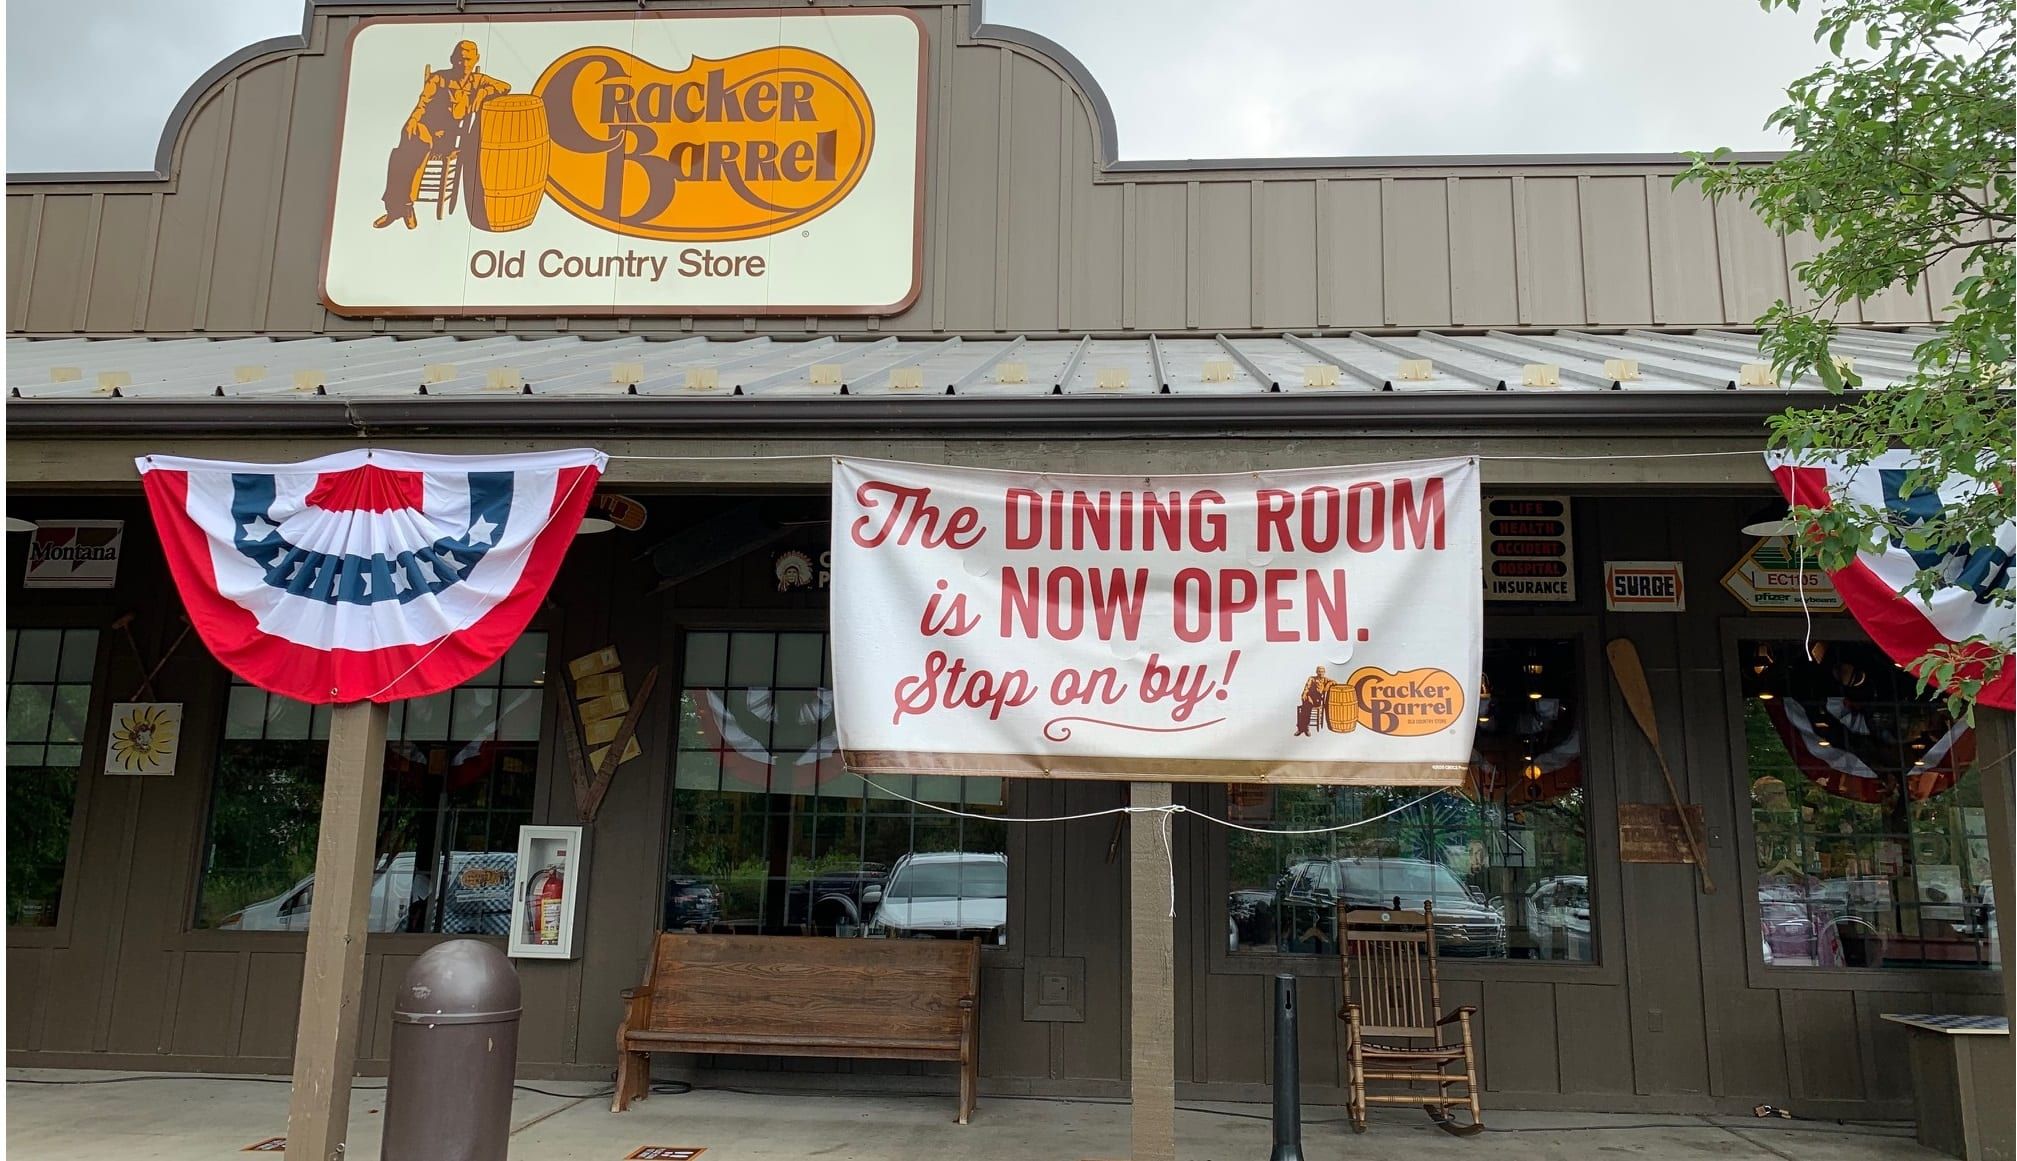 Cracker Barrel opens many locations for dine-in service